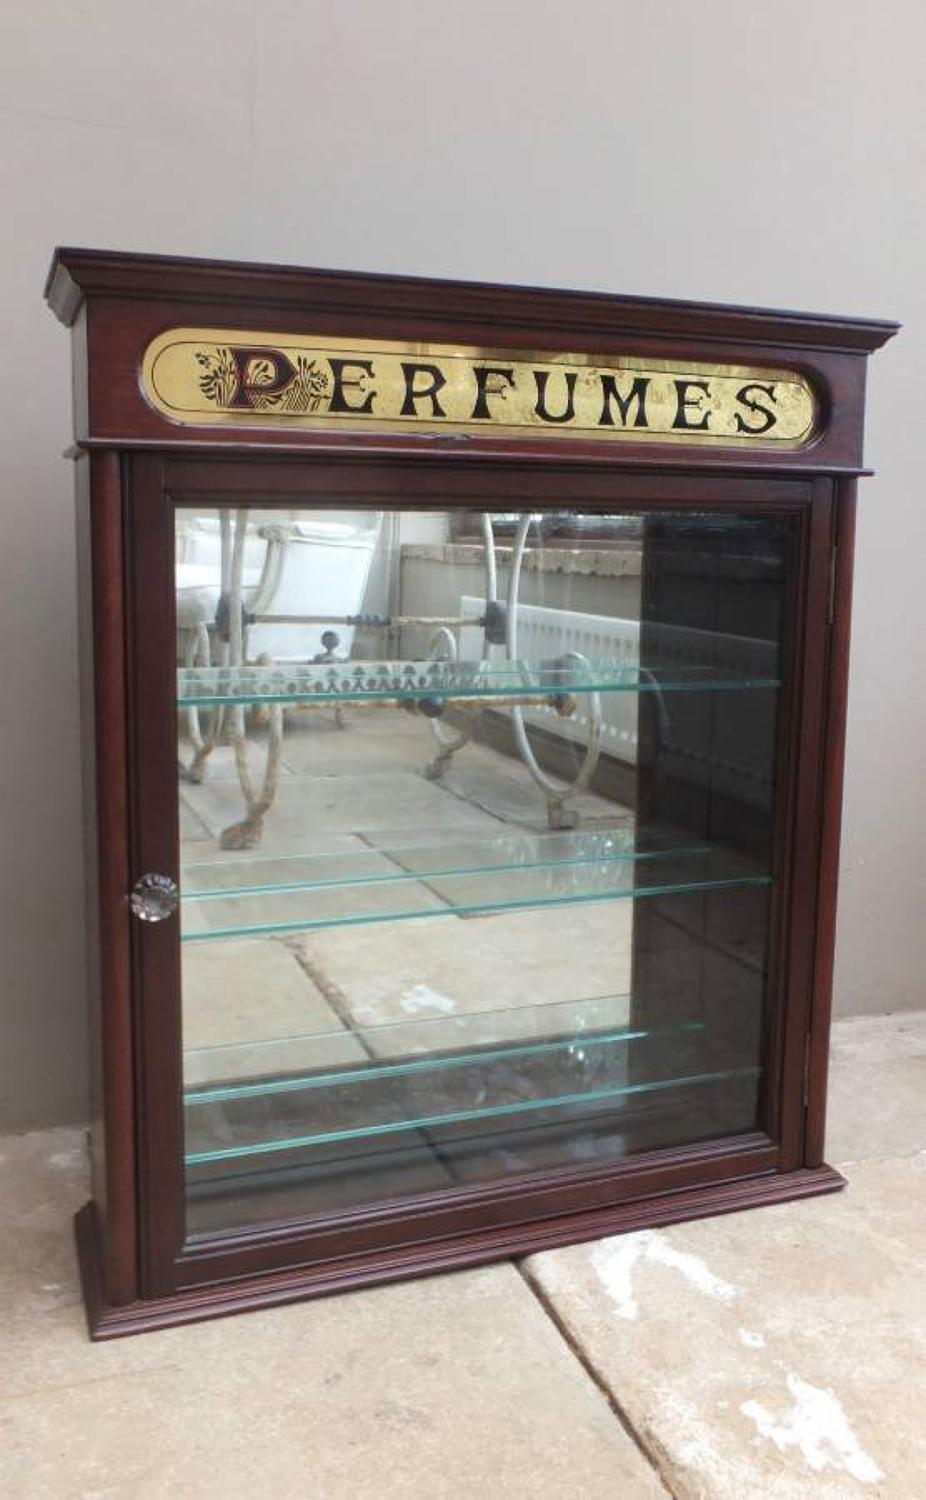 Late Victorian Shops Advertising Cupboard - Perfumes